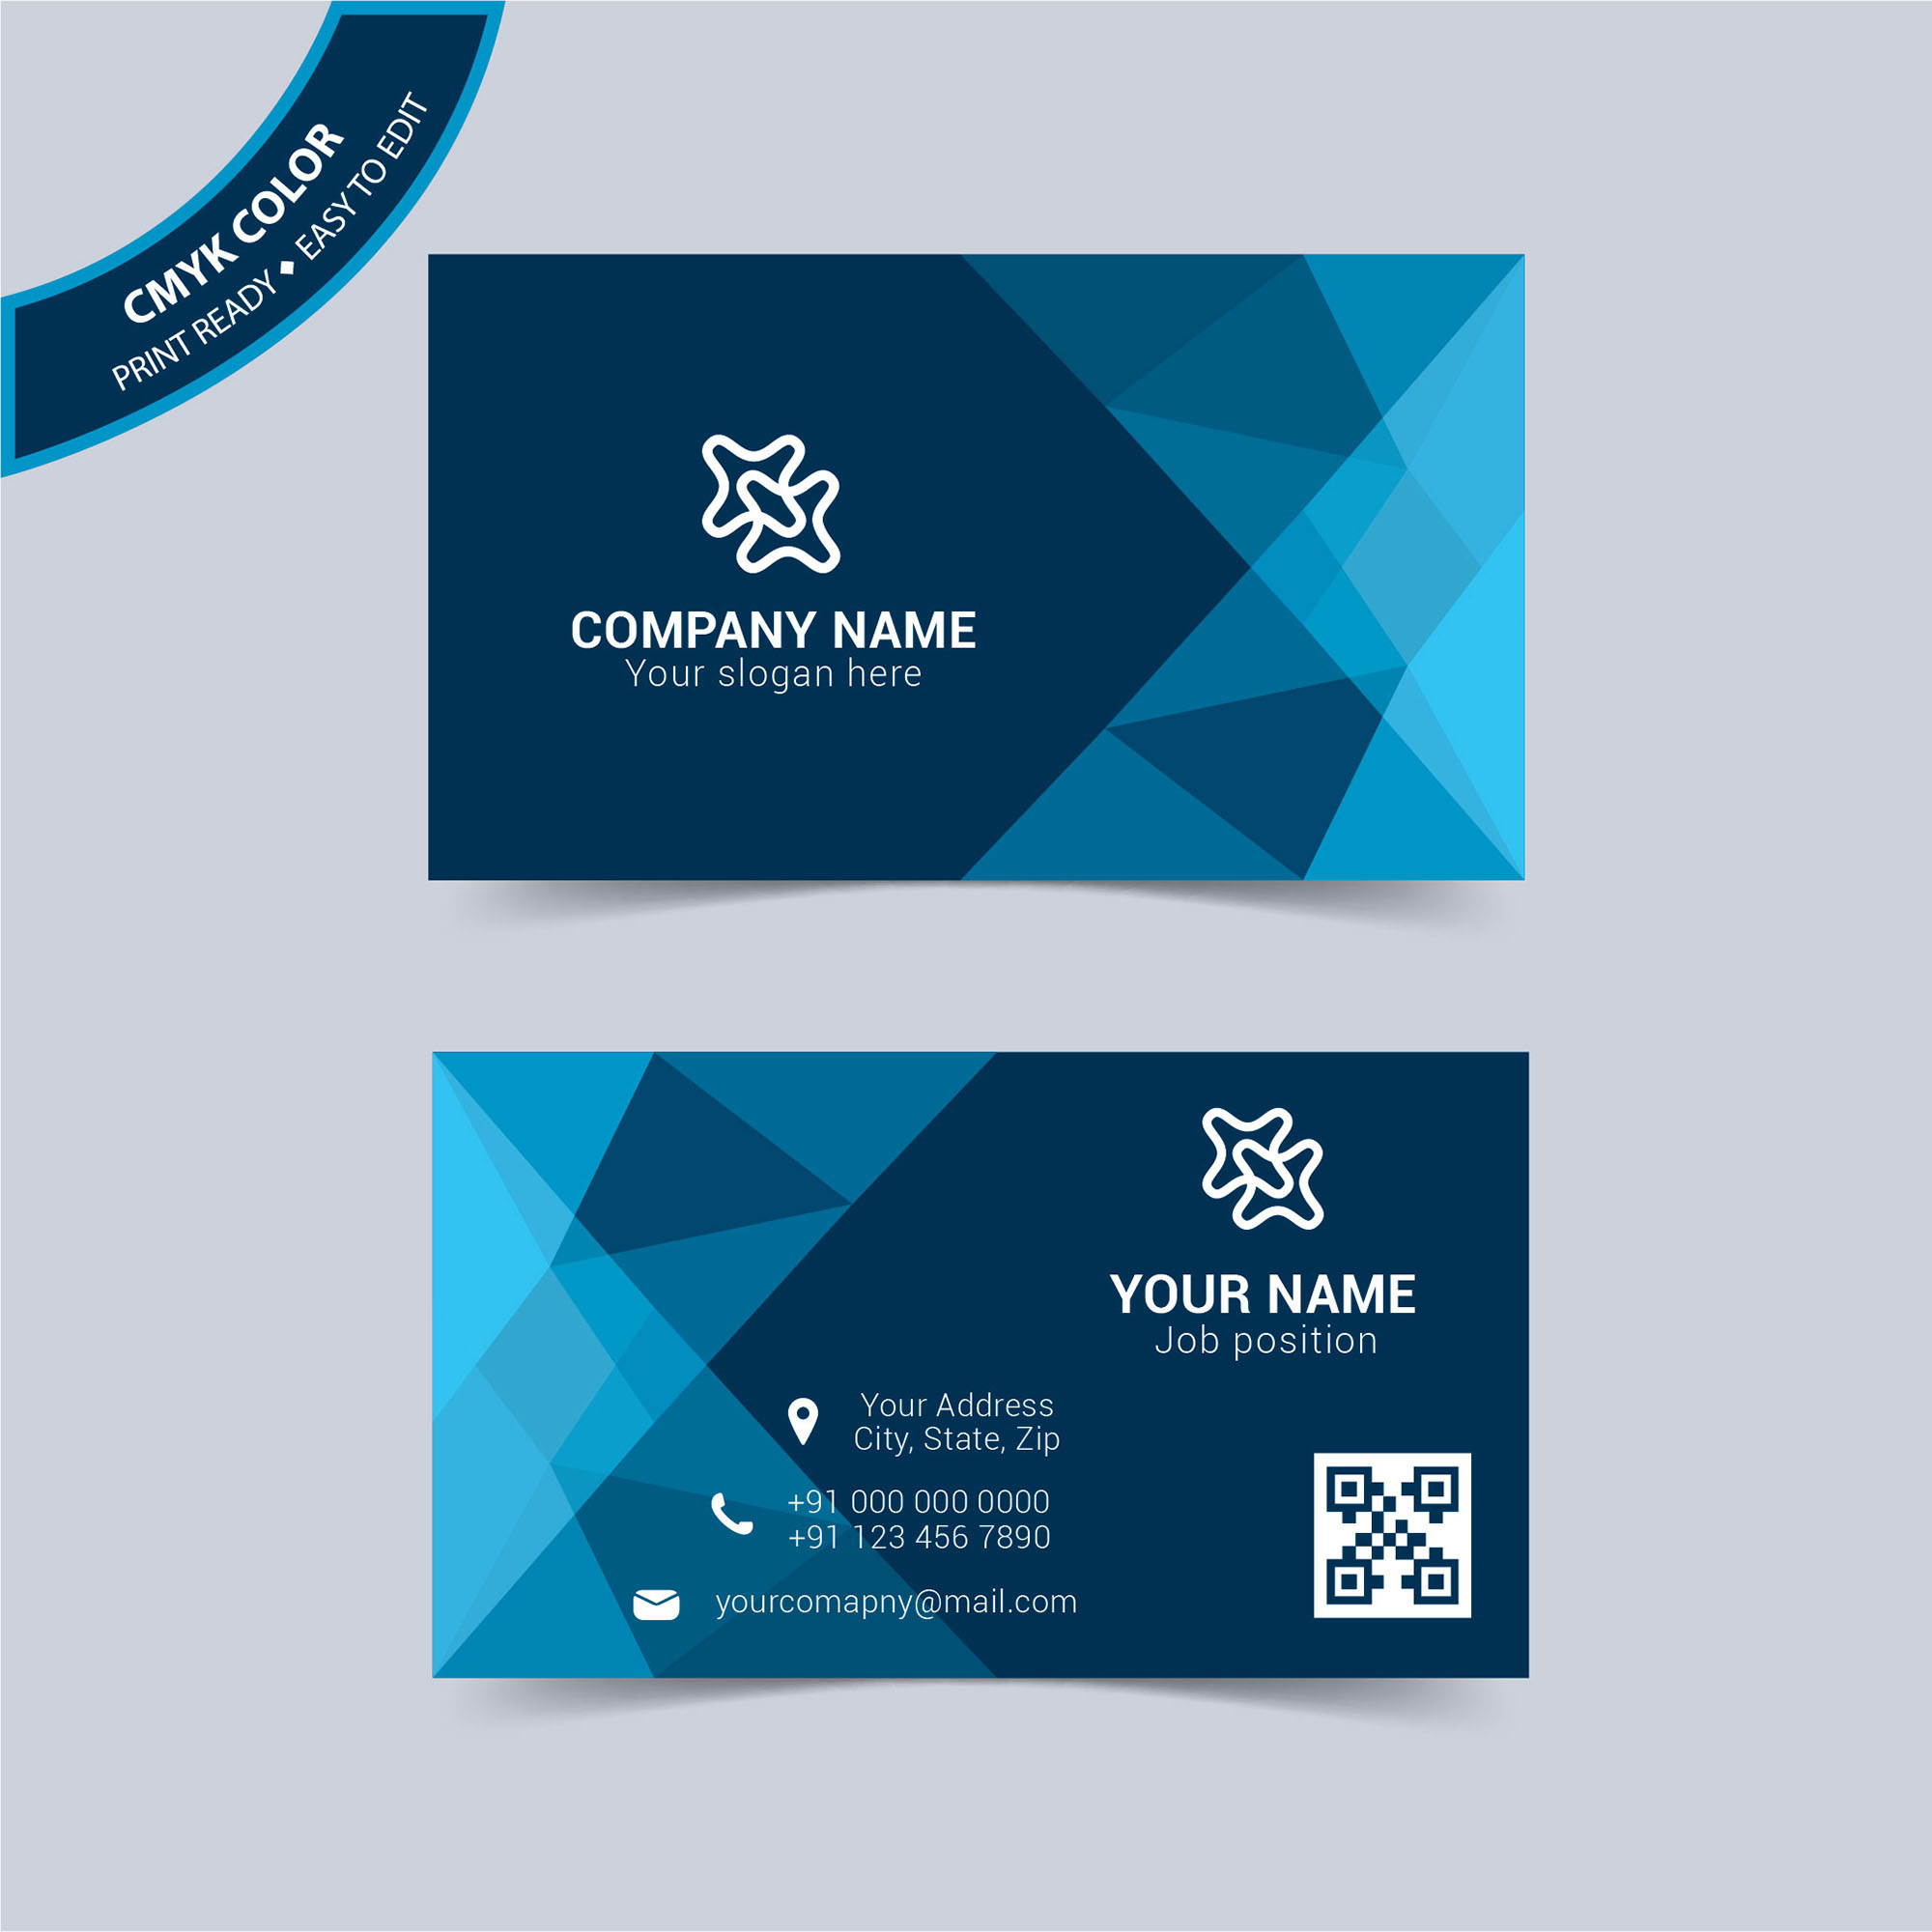 Creative corporate business card design free download wisxi business card business cards business card design business card template design templates cheaphphosting Image collections